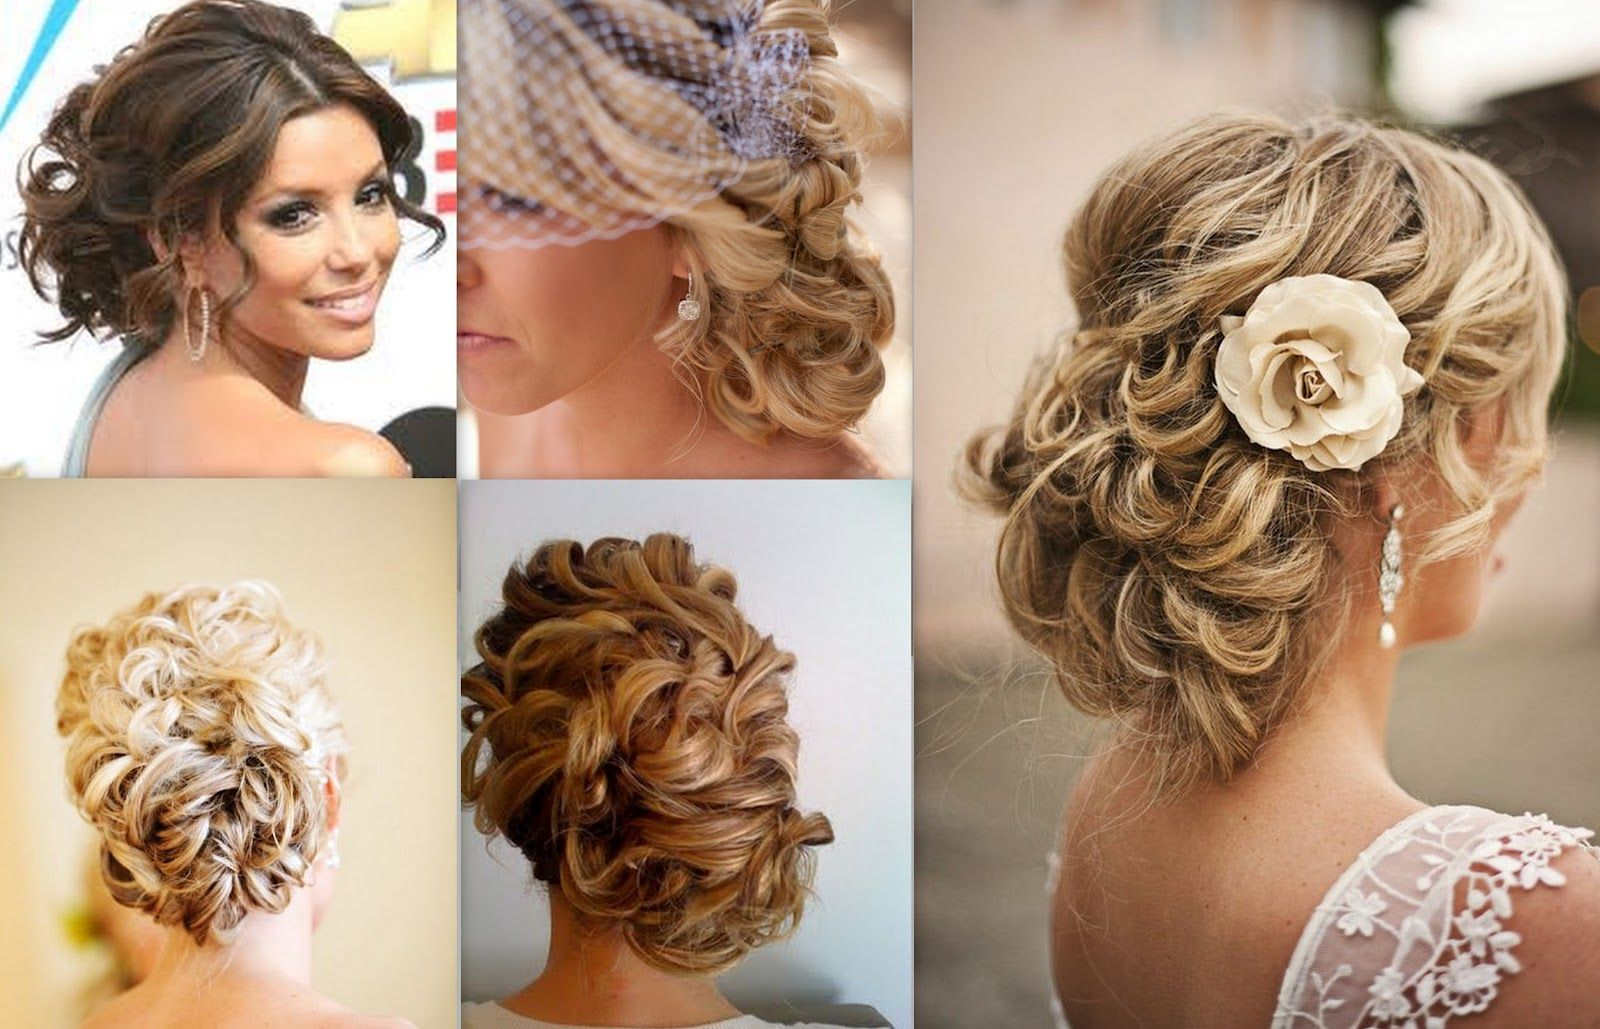 Wondrous Wedding Hairstyles Hairstyles And Side Buns On Pinterest Hairstyles For Men Maxibearus